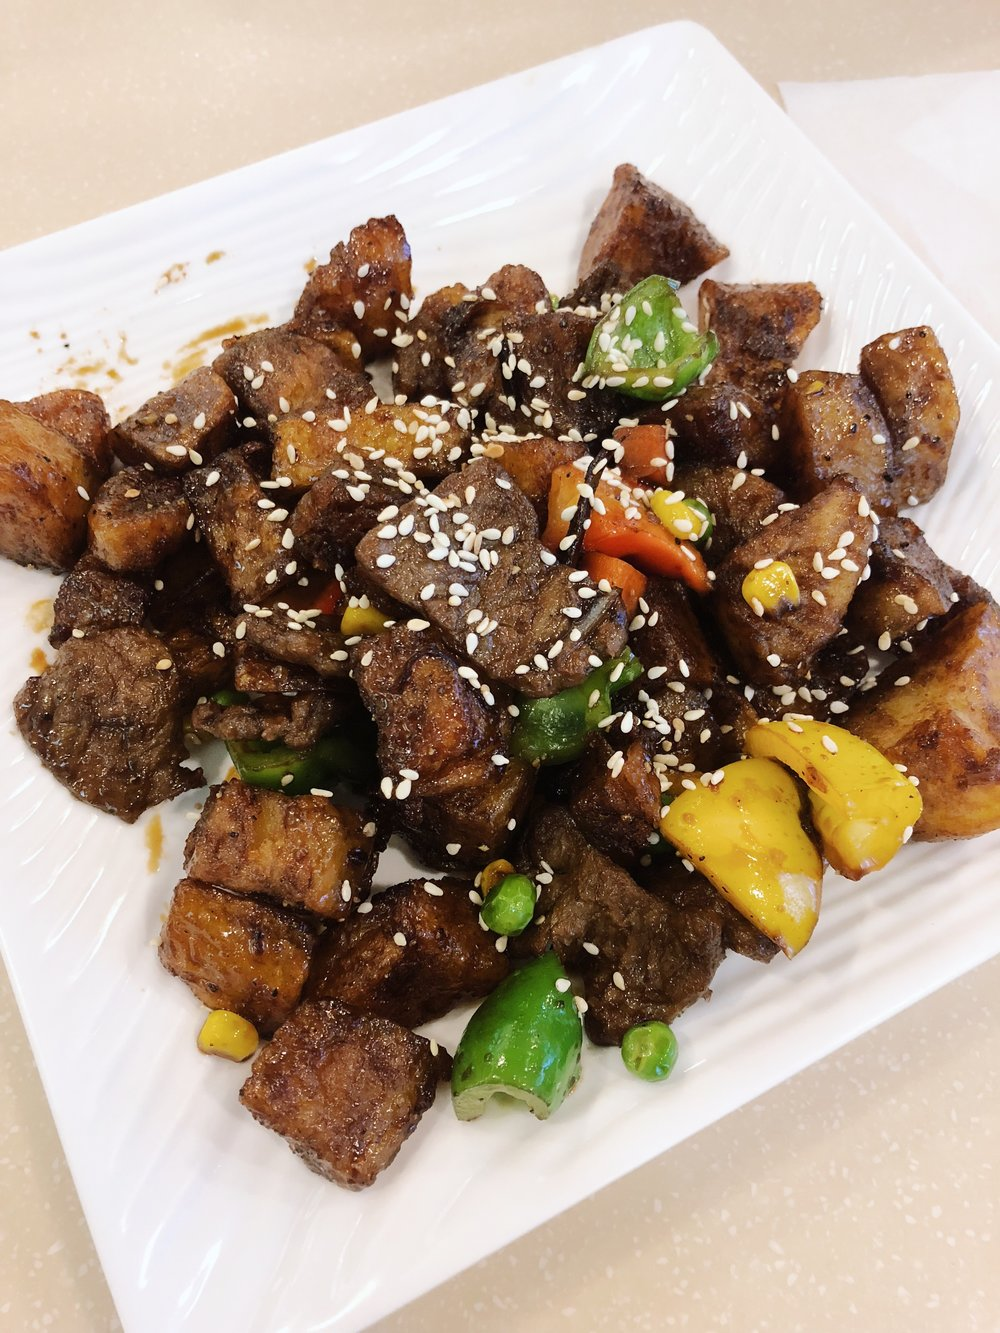 Fried Pepper 'Beef' from Loving Hut